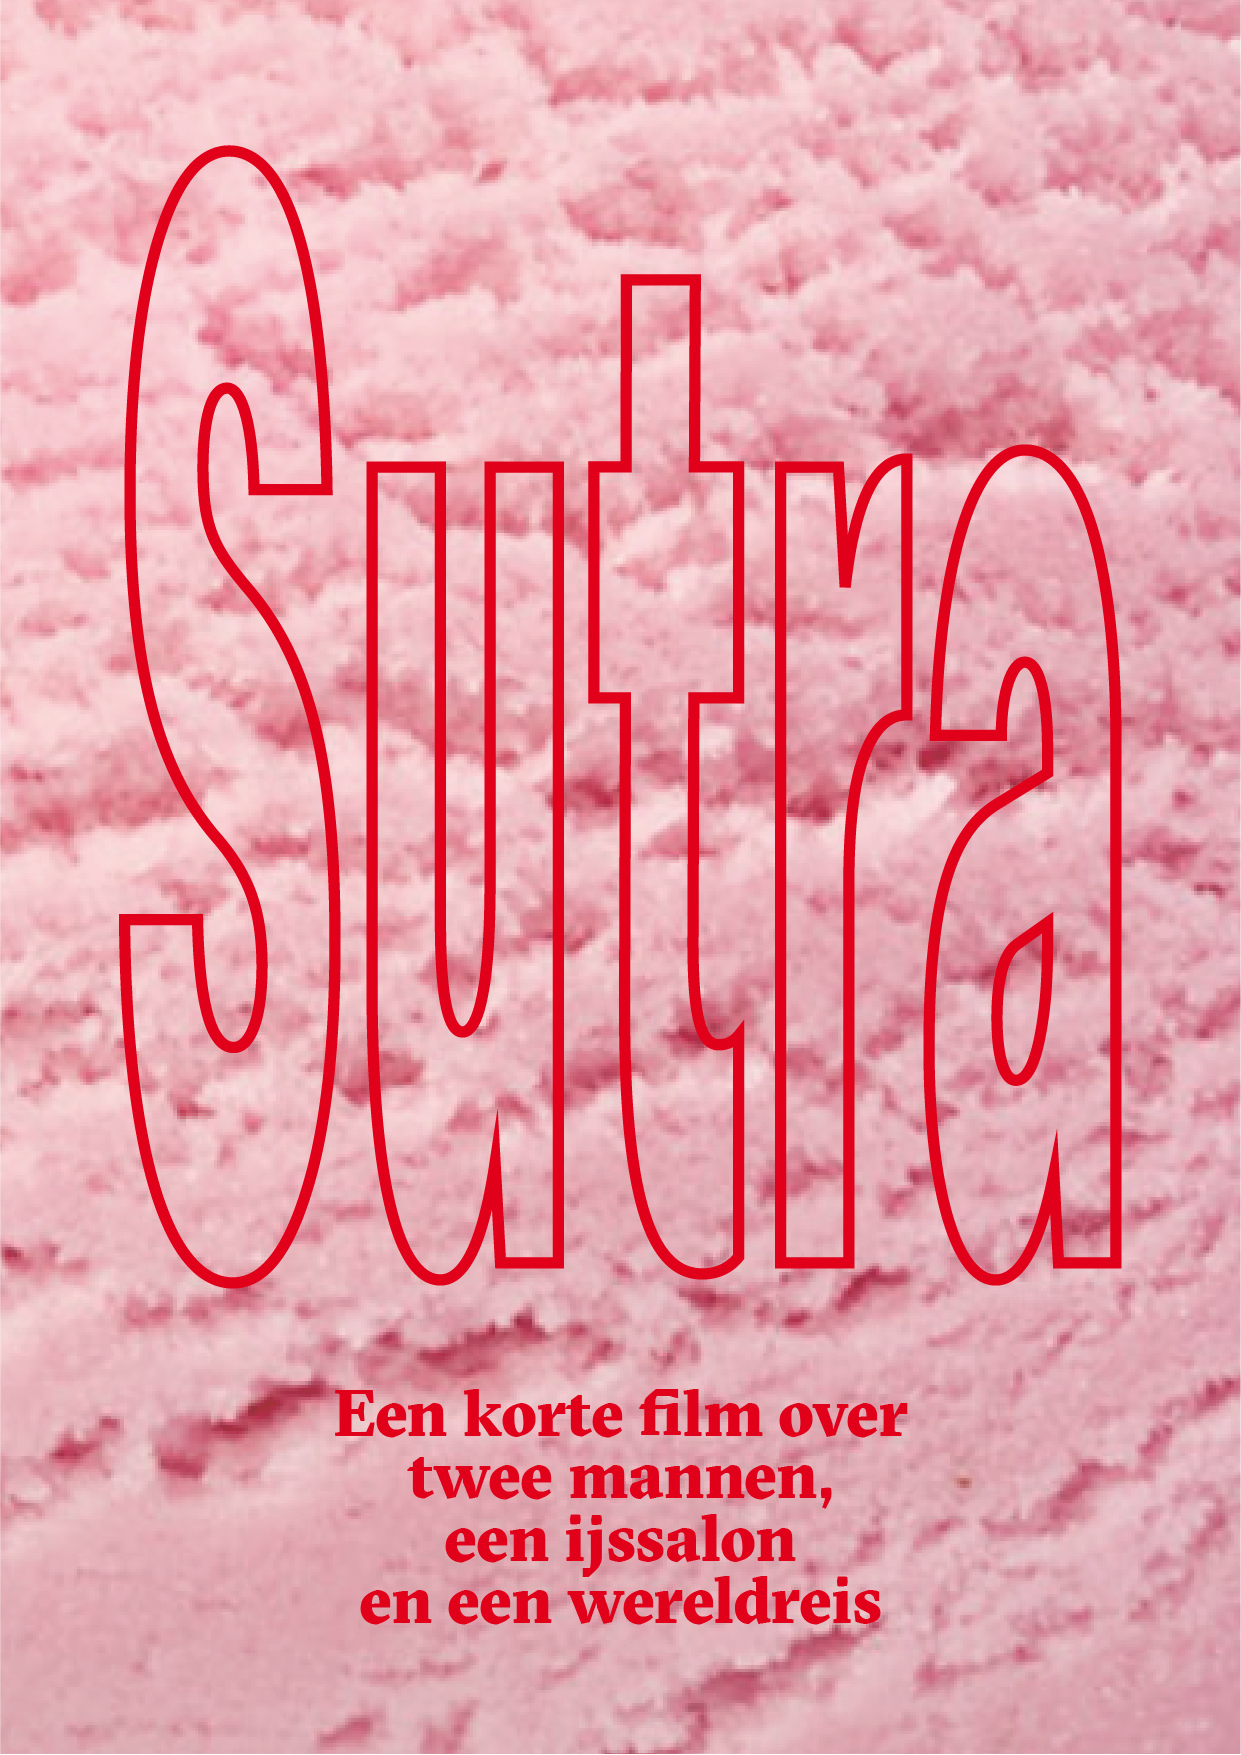 SUTRA — Remy leeflang